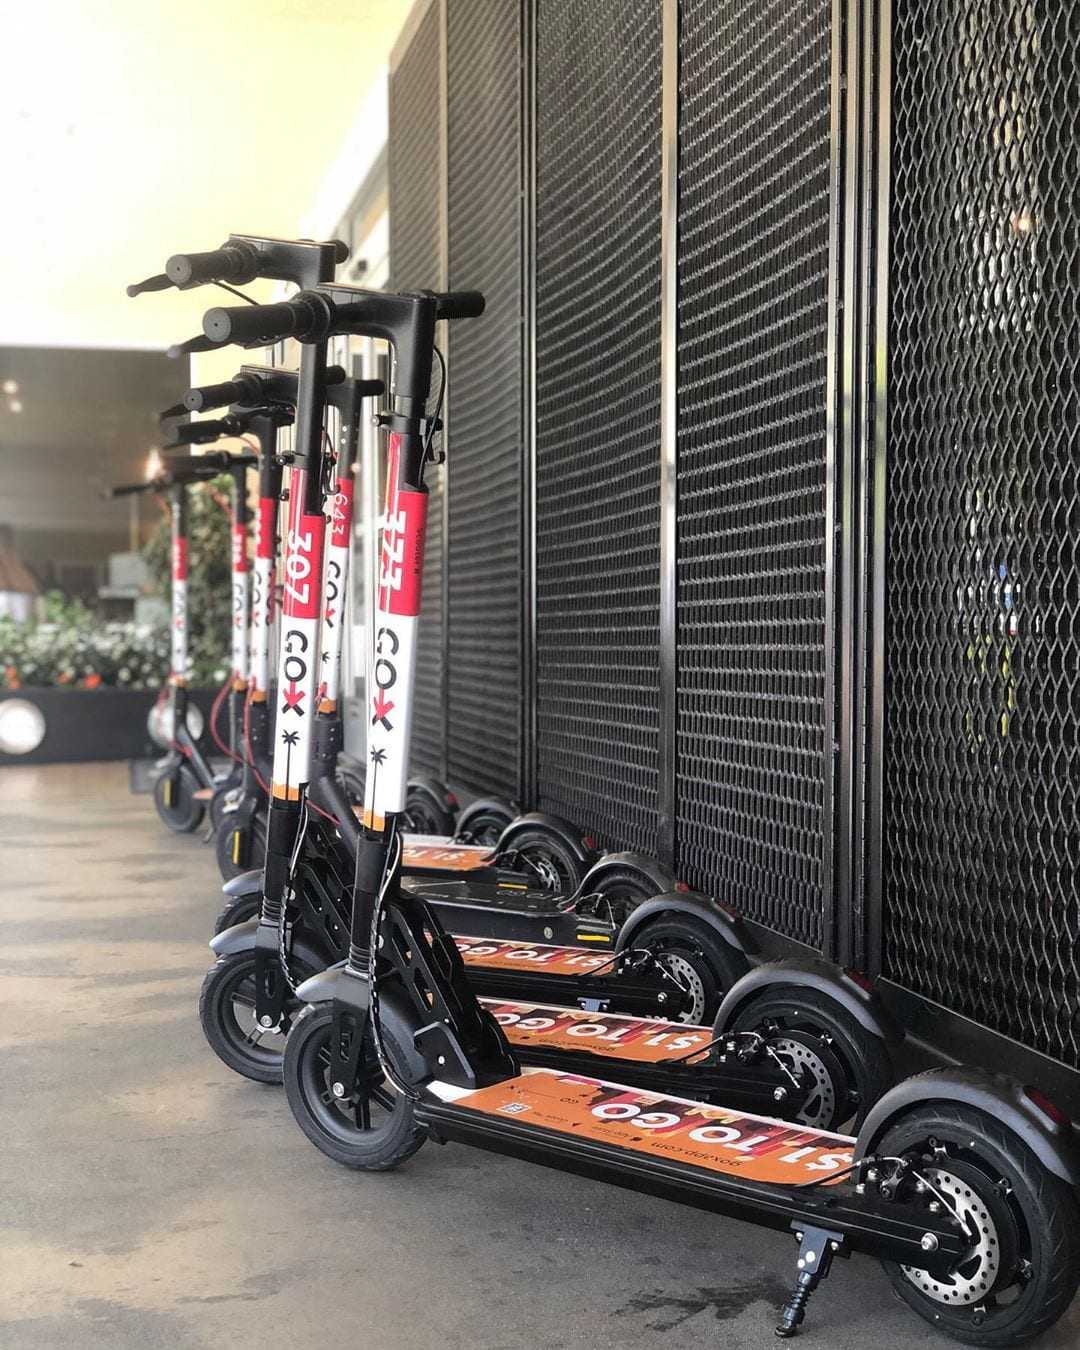 Discover @fishermanswharf on a scooter. We have them waiting for all our guests by the hotel entrance. #visitsf #hotelzephyrsf #fishermanswharf #sanfranciscogram